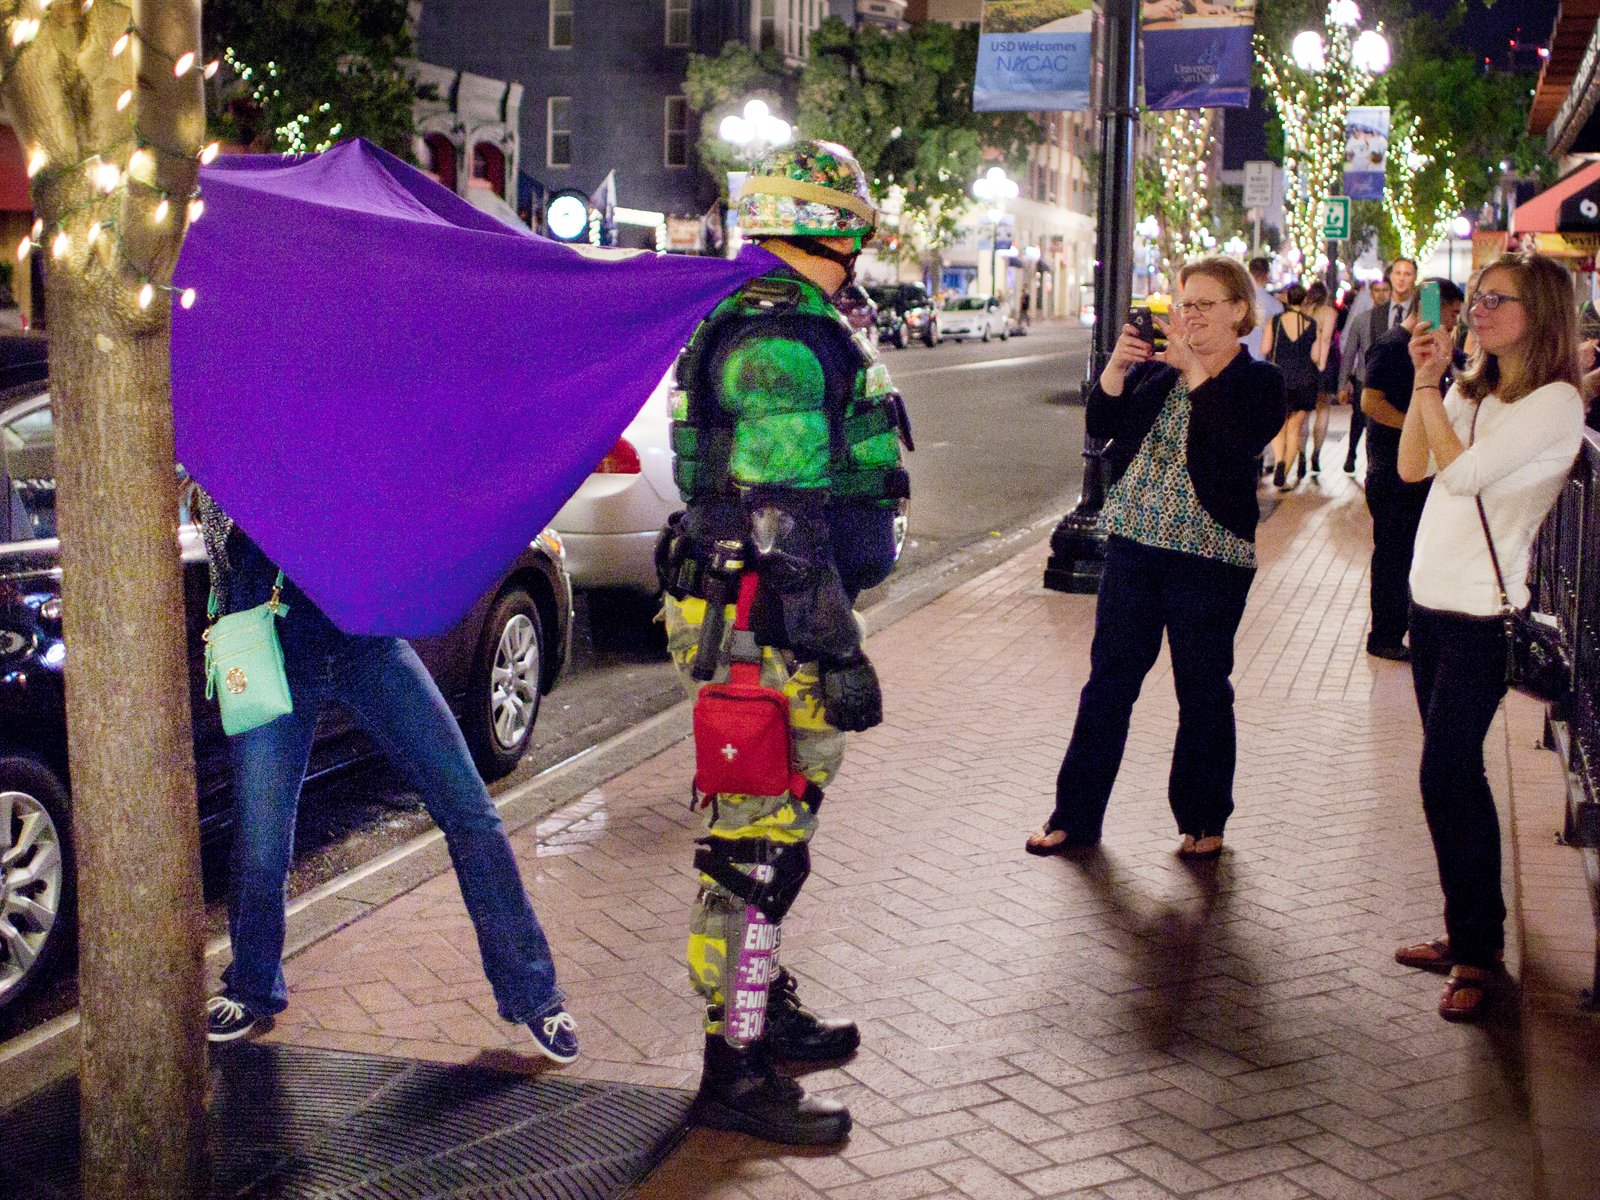 Posing for photos during a safety patrol in San Diego's gaslamp district which is the main party area with many bars and clubs.